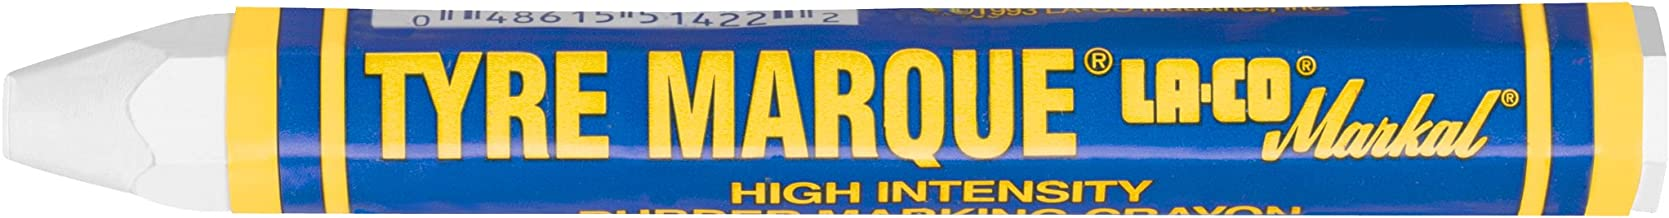 Markal Tyre Marque Tire Marking Crayon for Temporary Tire Marking, -20 to 130 Degree F Temperature, 1/2